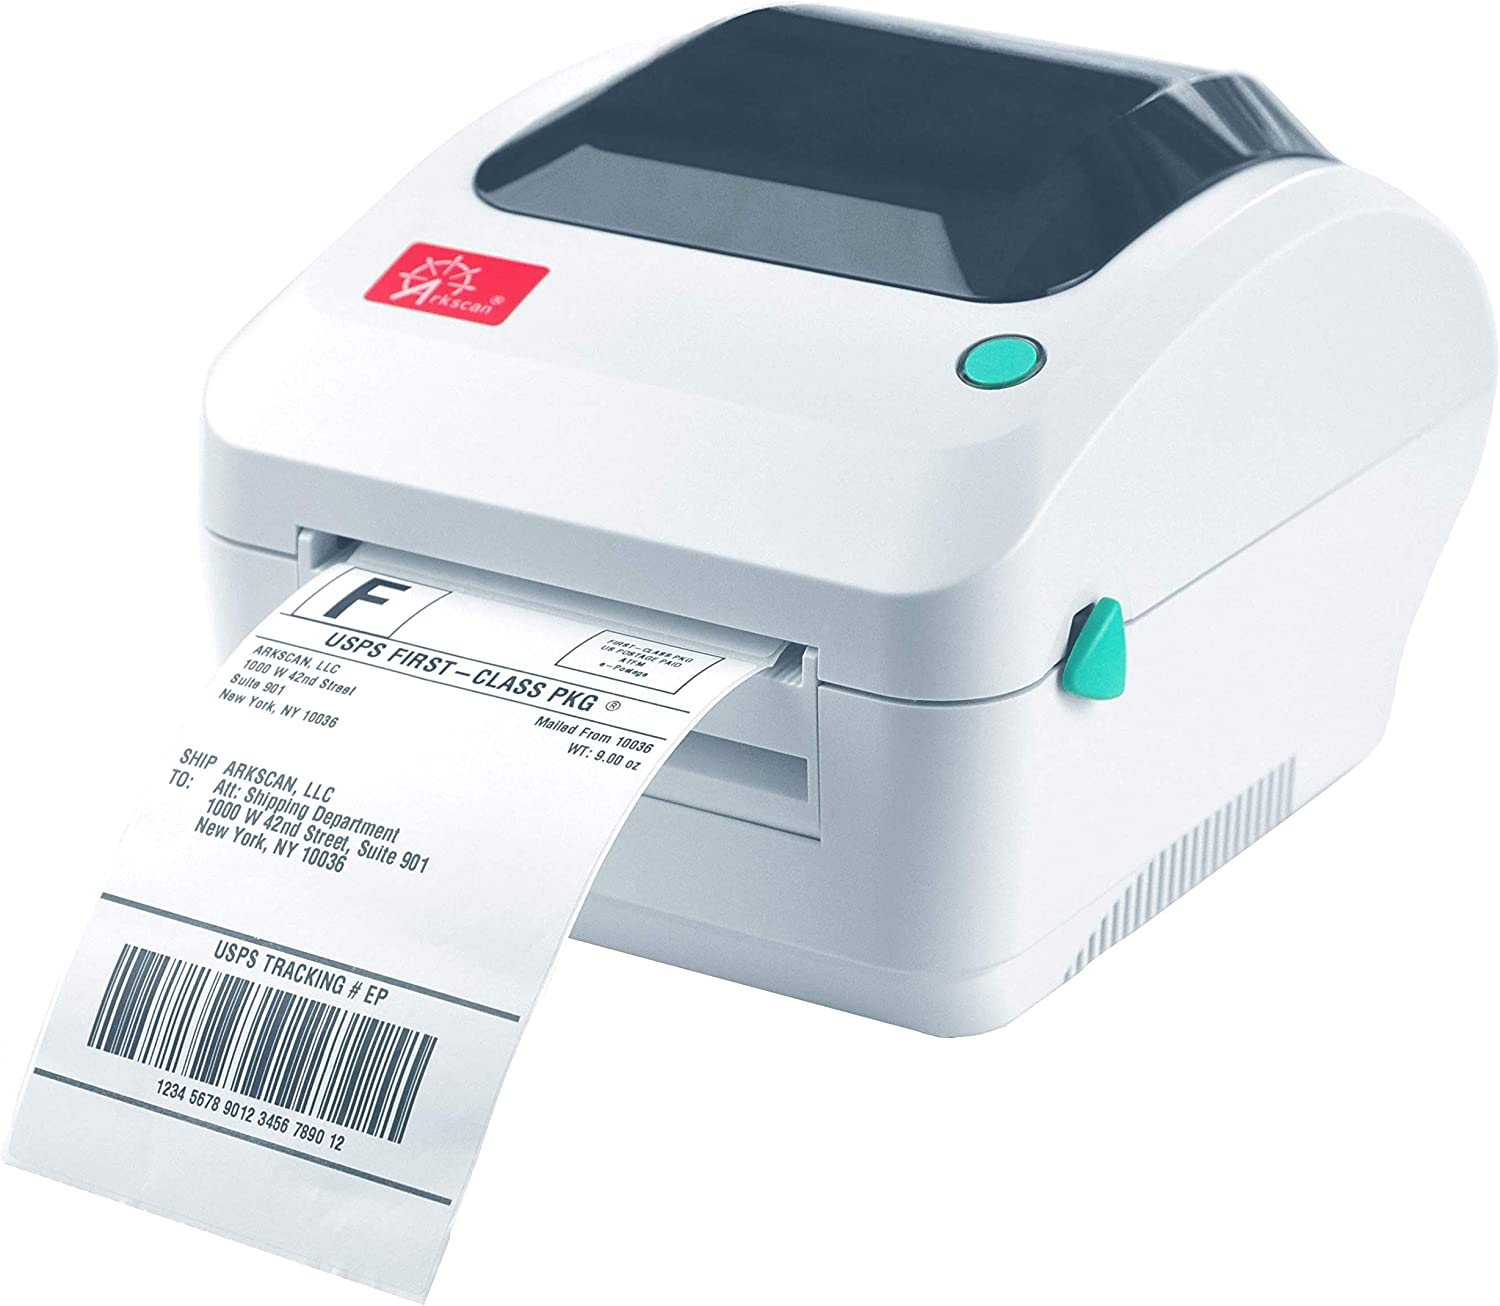 Arkscan 2054A USB + Ethernet/LAN Shipping Label Printer, Support Amazon Ebay PayPal Etsy Shopify Shipstation Stamps.com Ups USPS FedEx DHL On Windows & Mac, Roll & Fanfold Thermal Direct Label 4 x 6